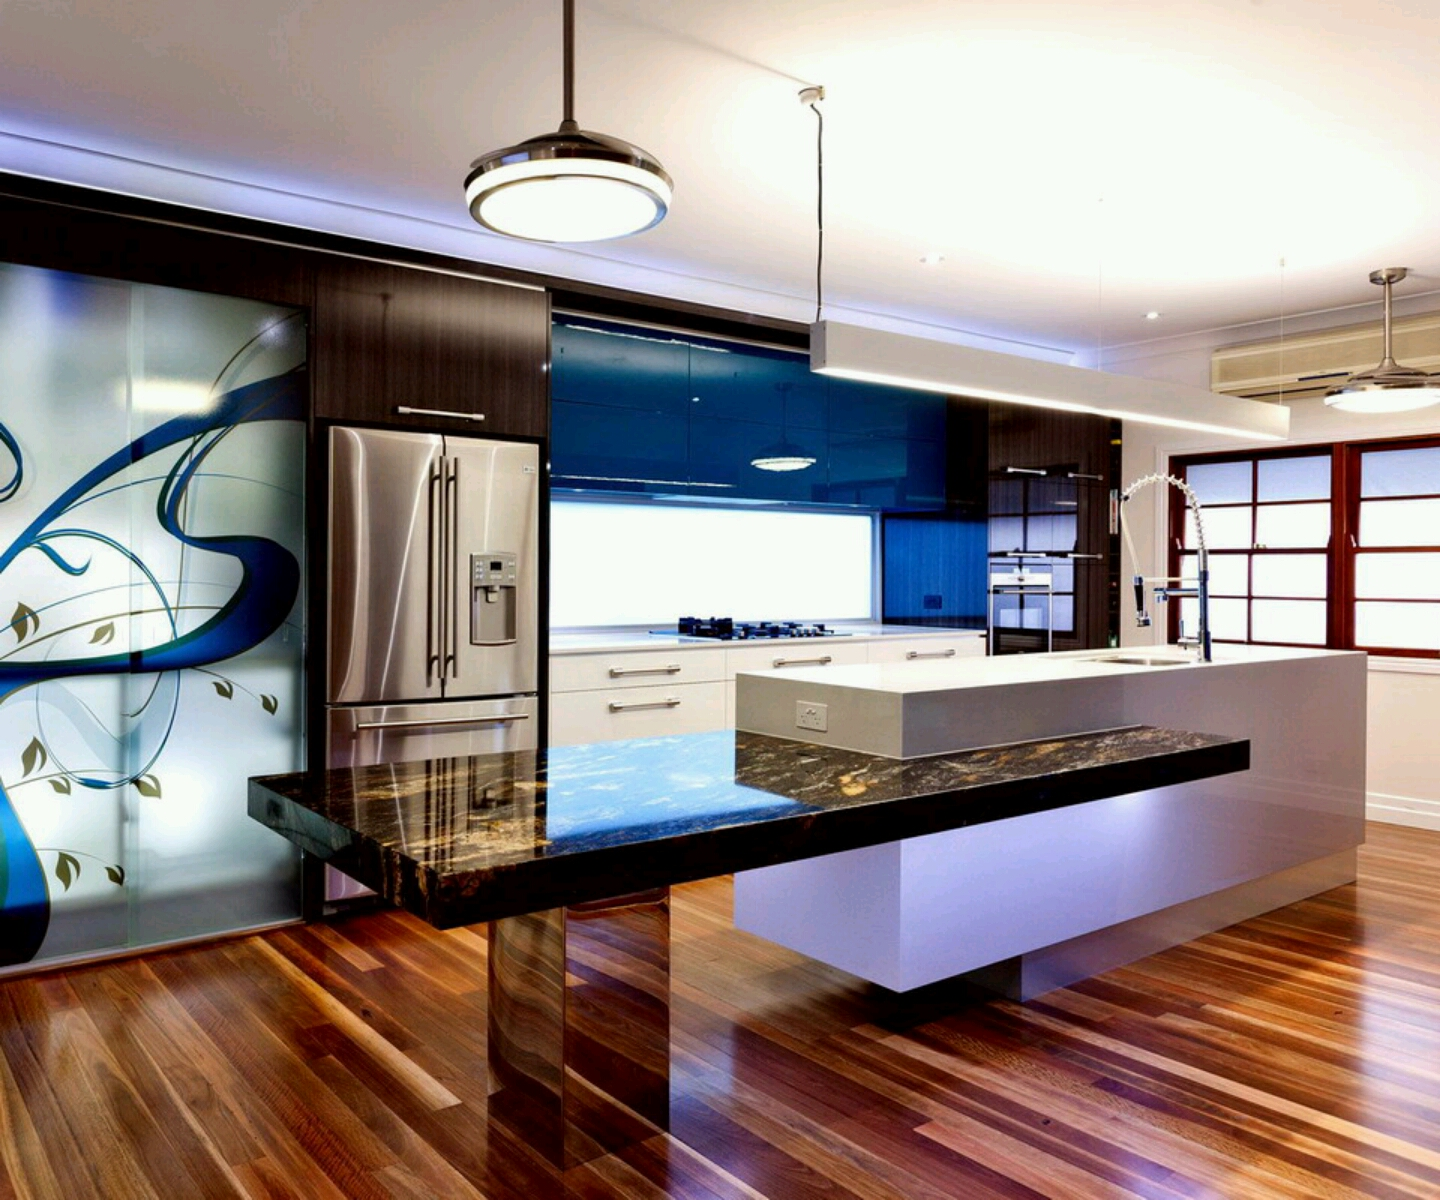 Ultra modern kitchen designs ideas new home designs for Kitchen decor ideas